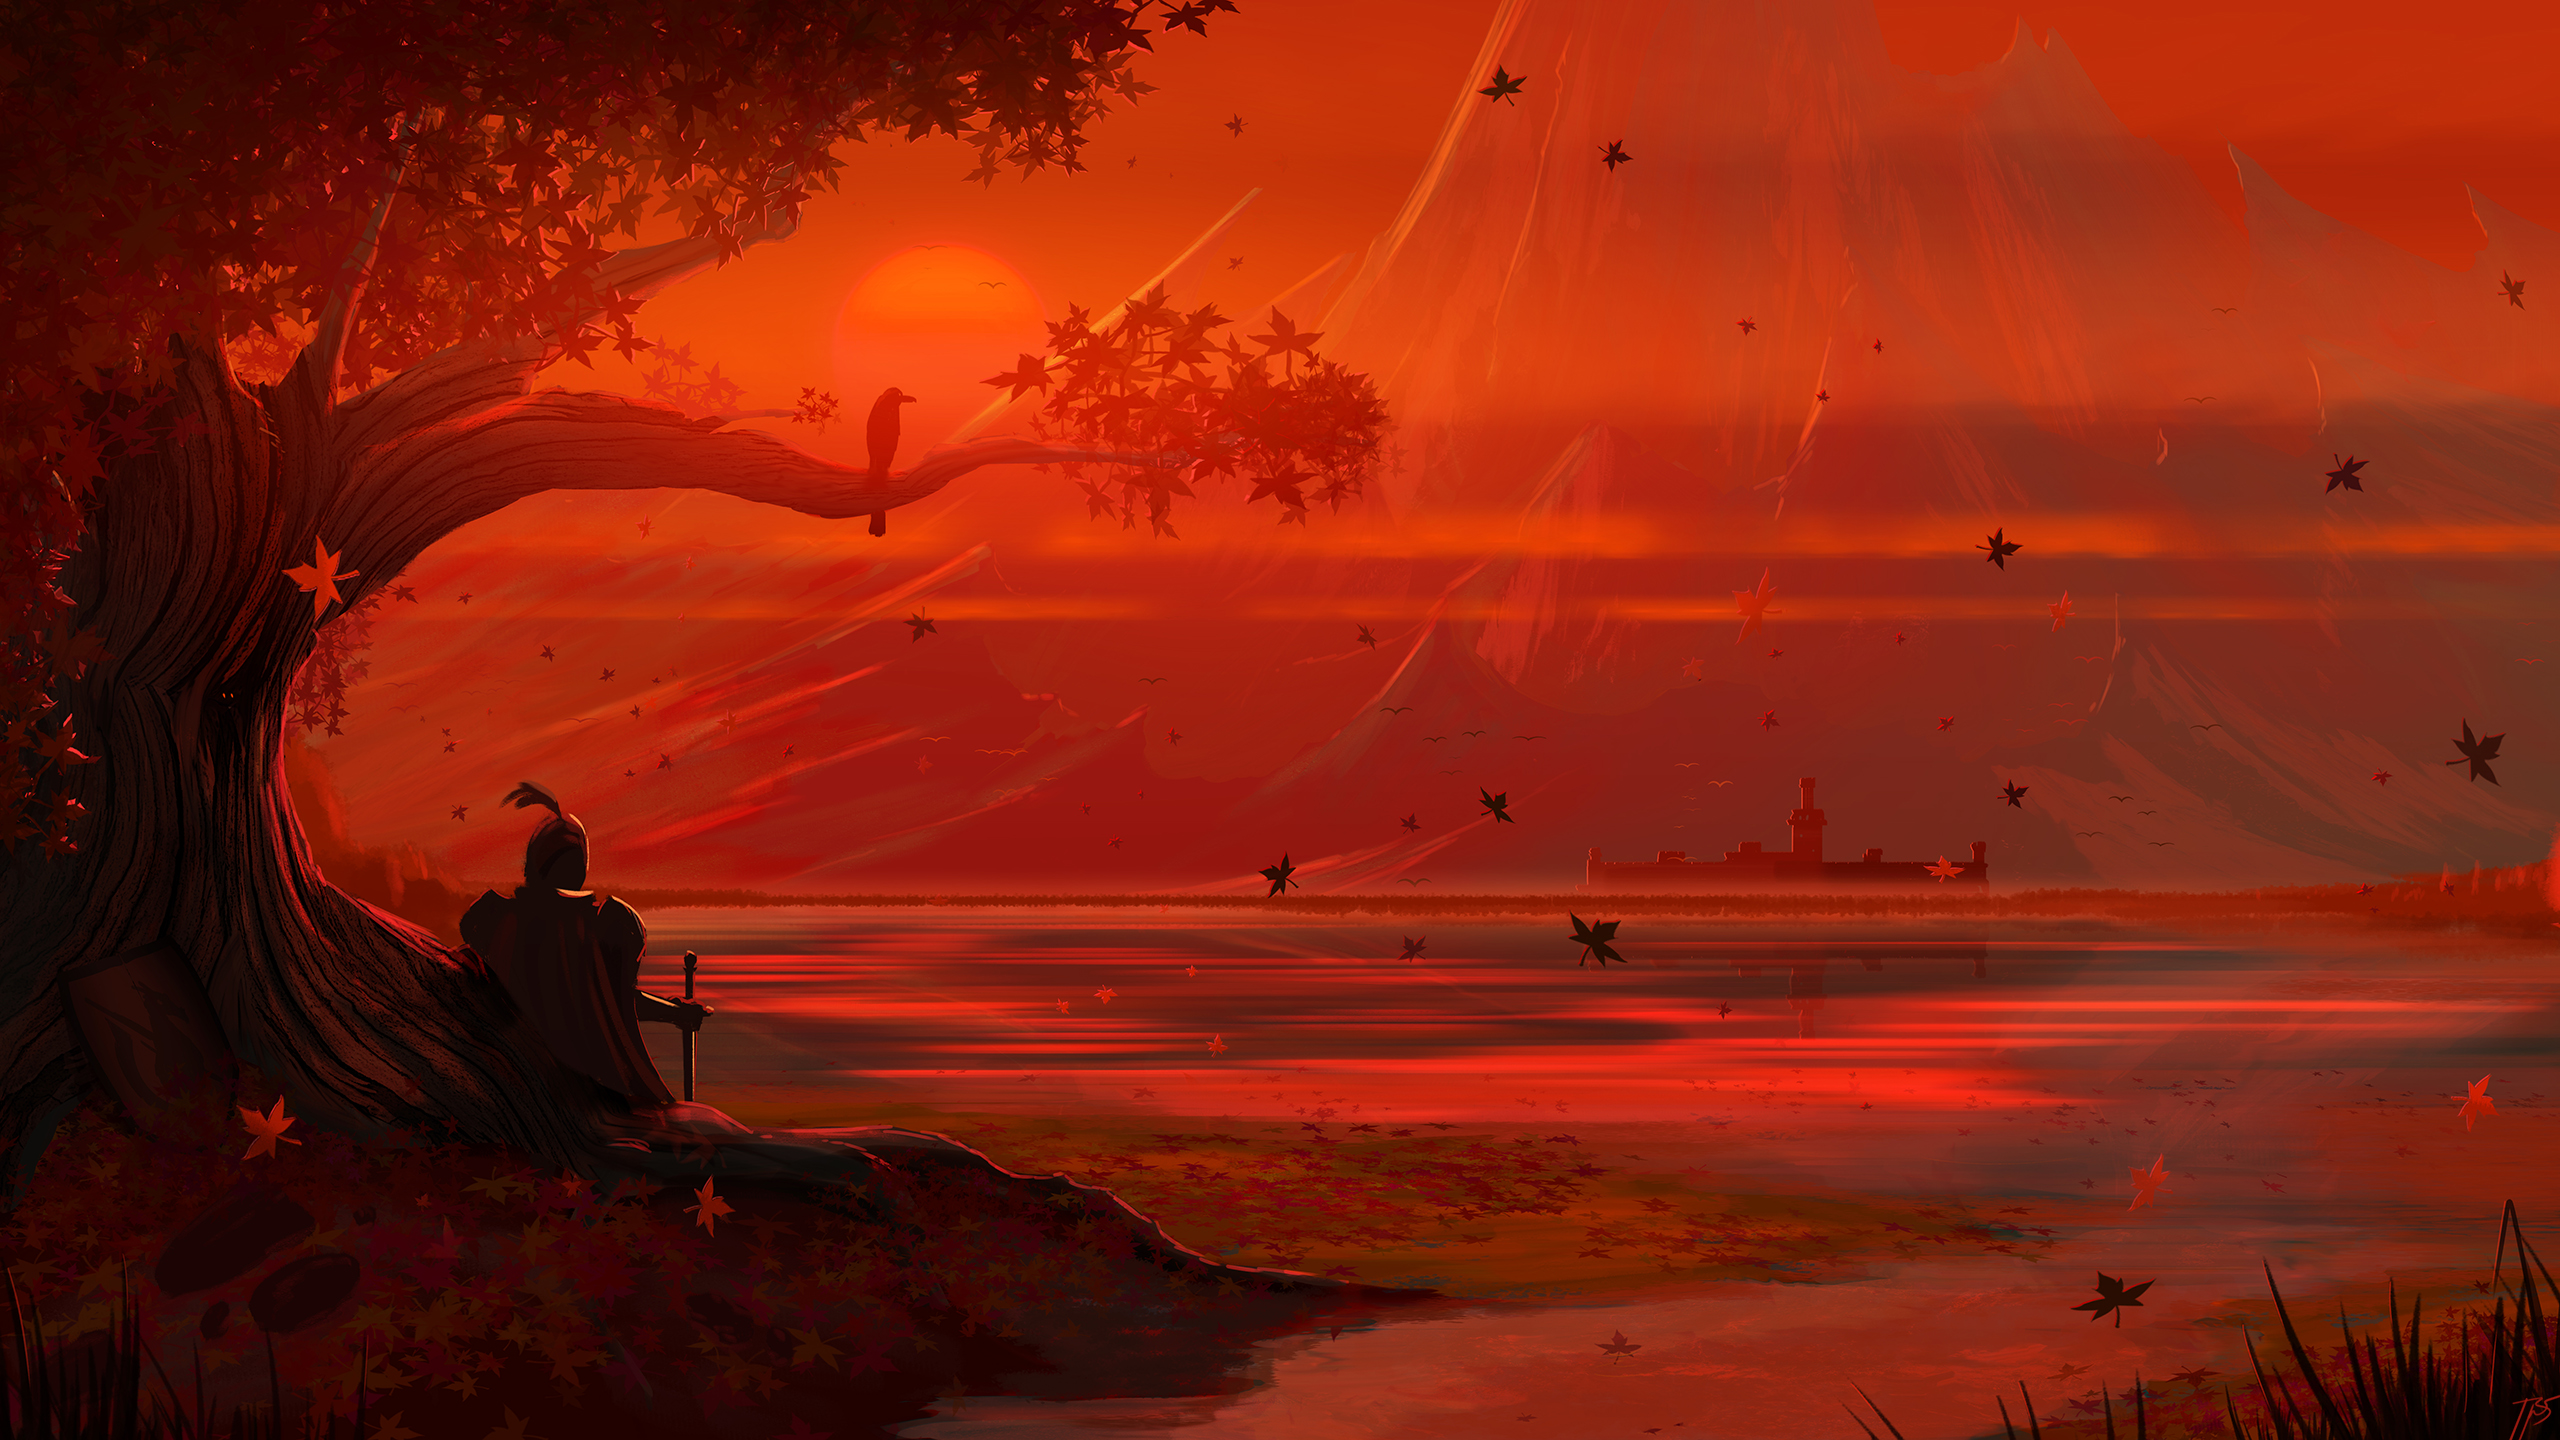 General 2560x1440 JoeyJazz fantasy art mountains fall sunset knight red trees fallen leaves